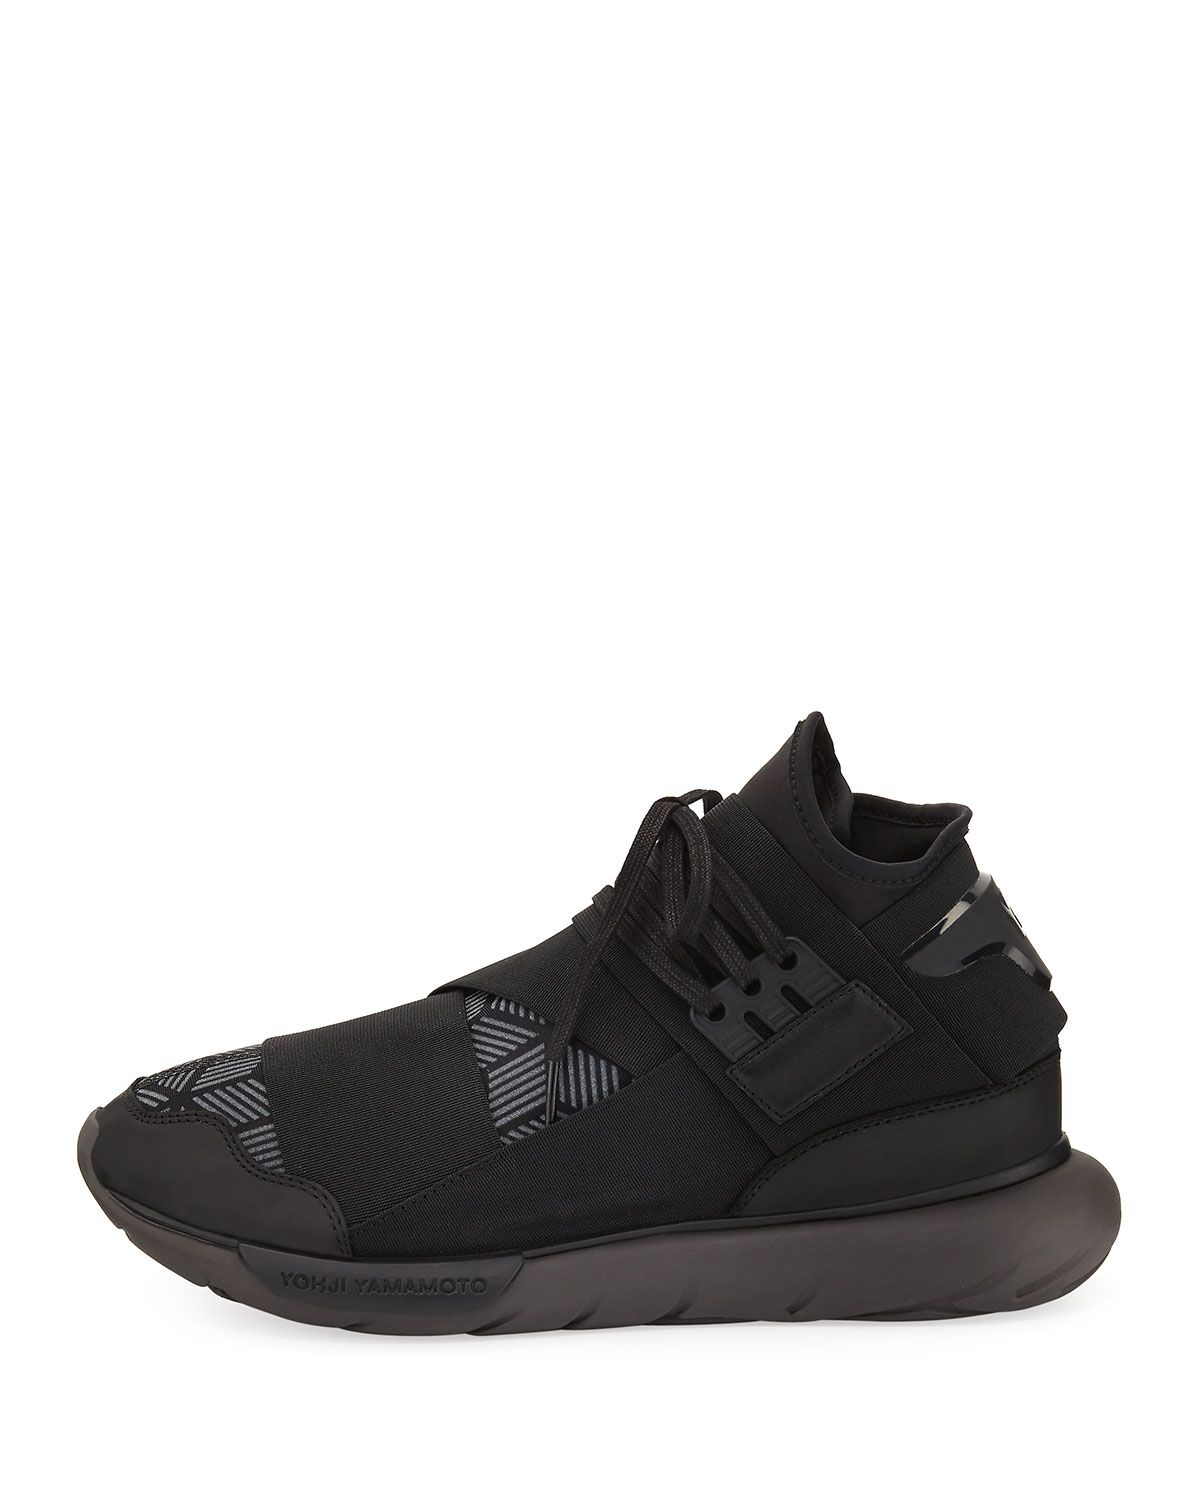 59513c394ff56 Y-3 Qasa Mens Reflective Print High-Top Trainer Sneaker